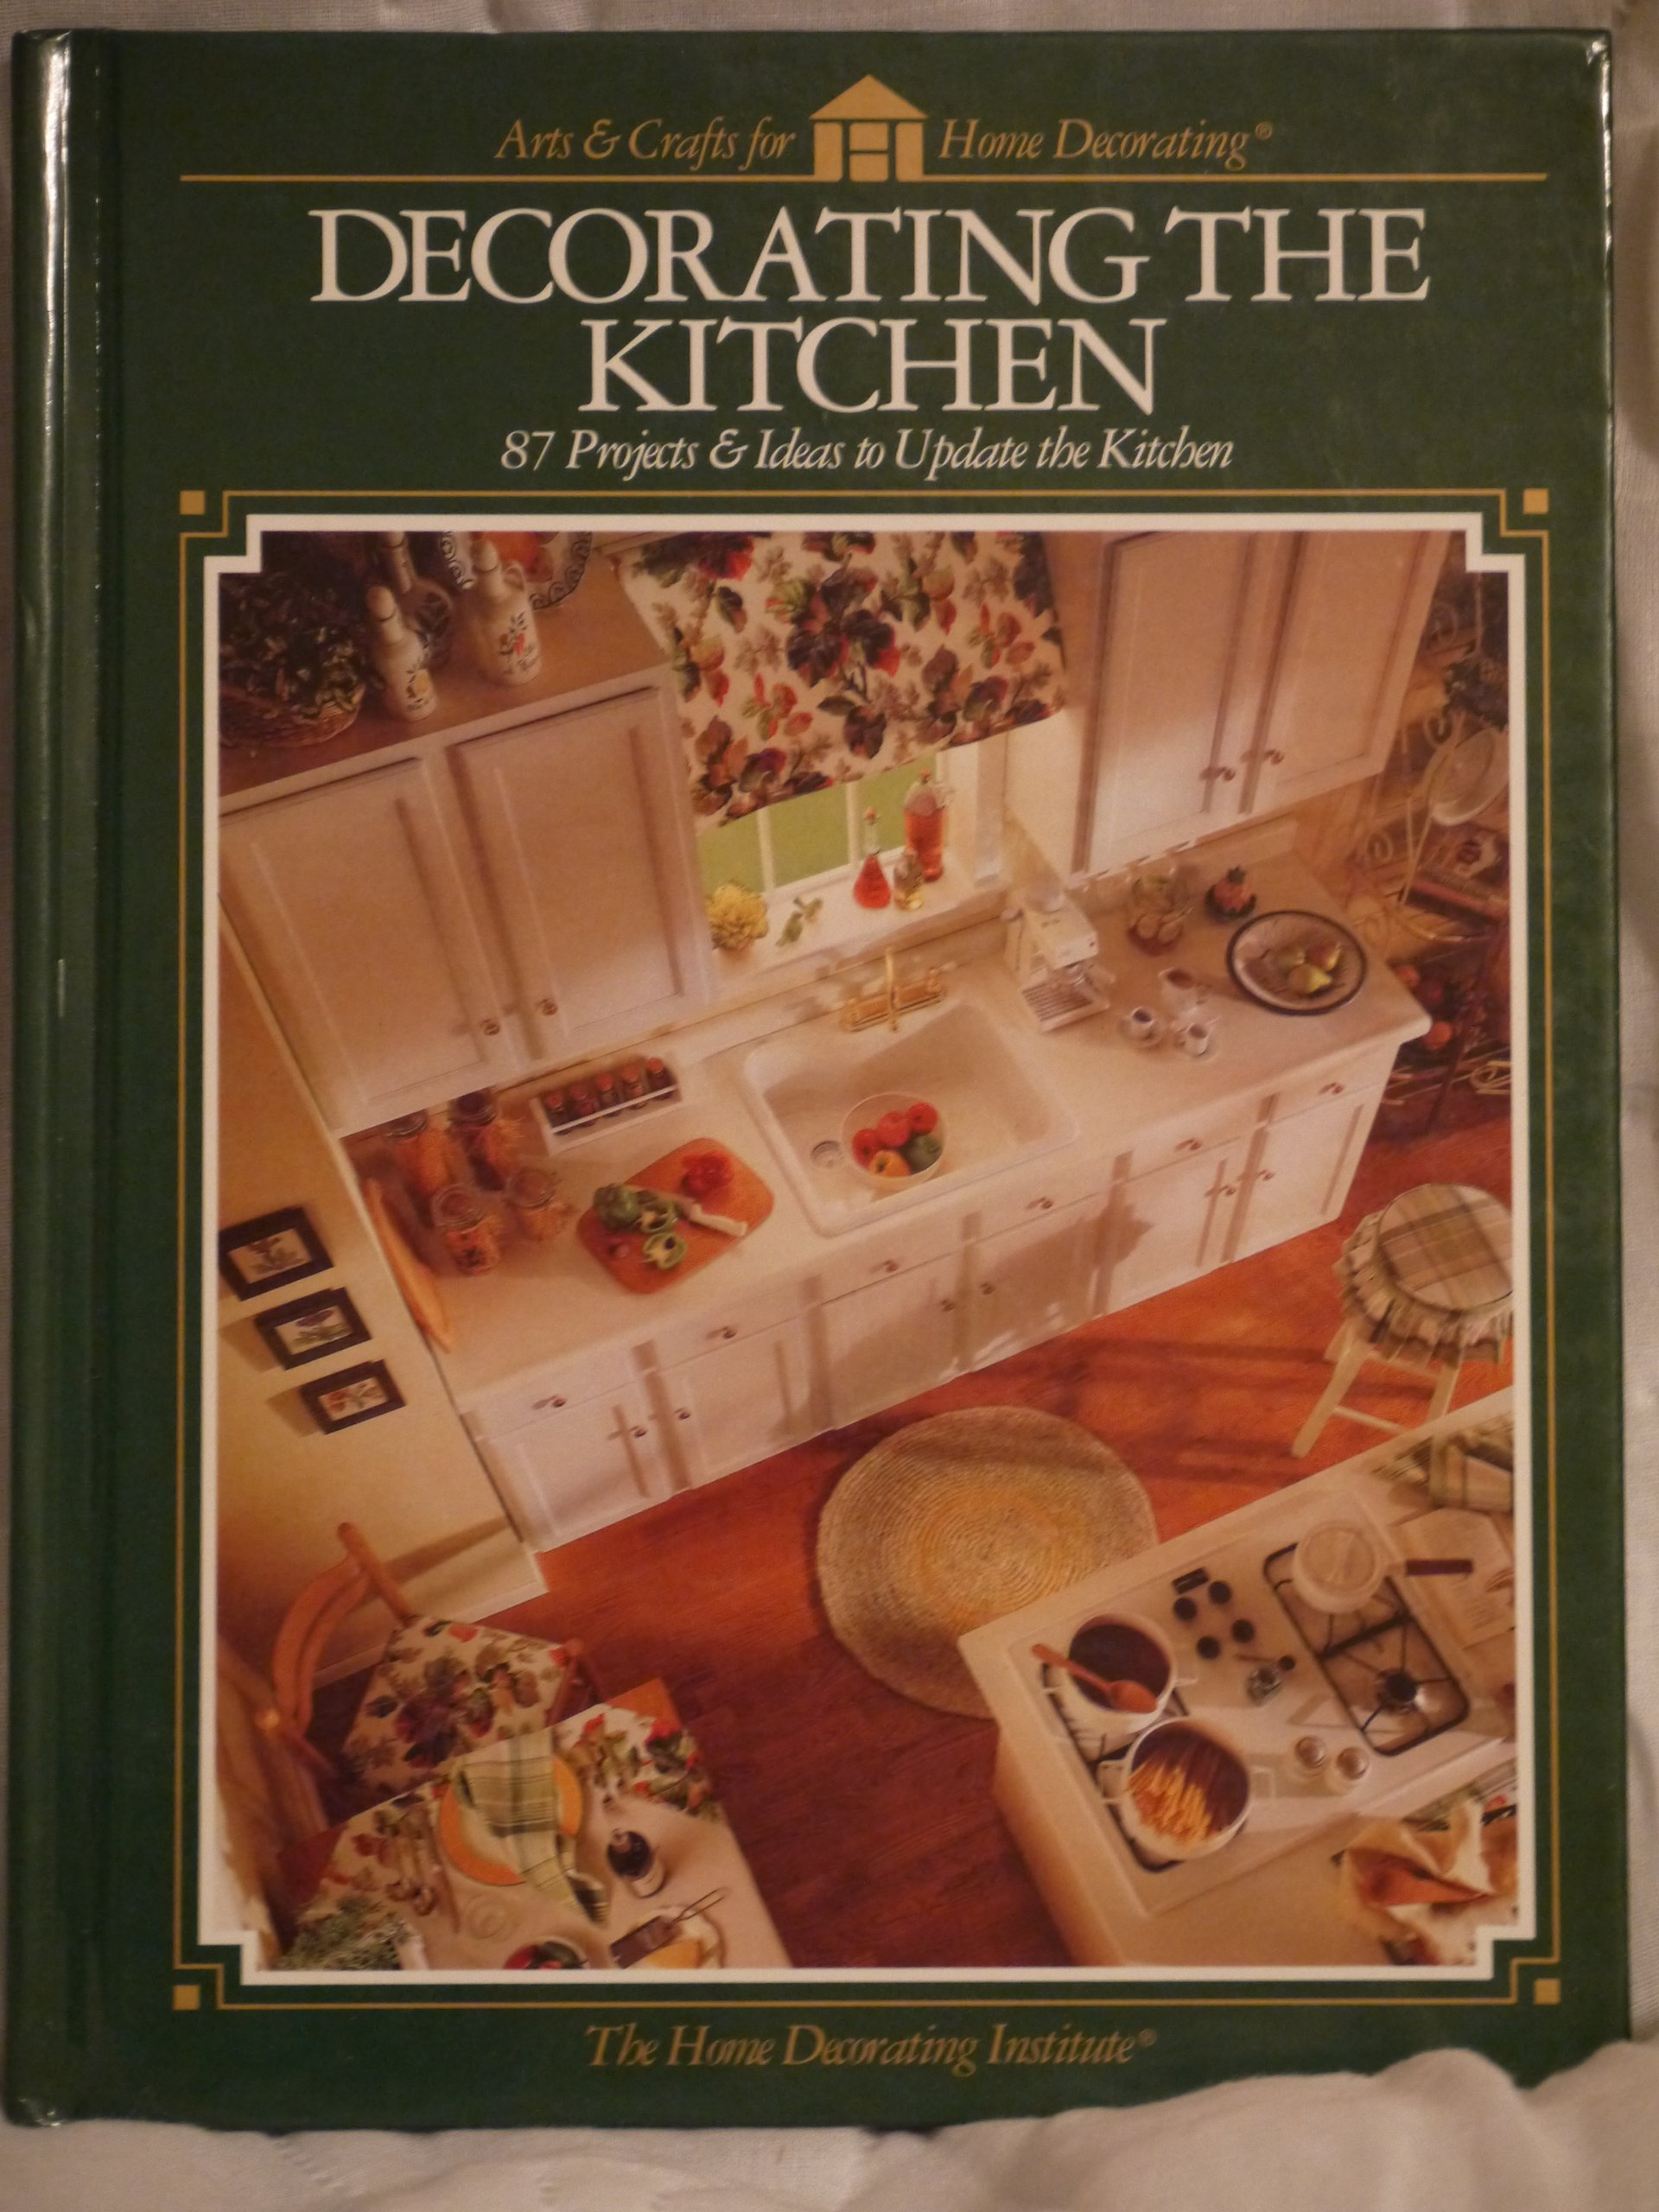 Decorating the Kitchen: 87 Projects & Ideas to Update the ... on ideas to decorate your kitchen, candles for kitchen, wall decorations for kitchen, home decoration for kitchen, sport ideas for kitchen, home decor kitchen, storage ideas for kitchen, flooring ideas for kitchen, christmas crafts for kitchen, food for kitchen, kitchen ideas for kitchen, party for kitchen, desk ideas for kitchen, dorm room ideas for kitchen, faux painting ideas for kitchen, vintage ideas for kitchen, cute ideas for kitchen, diy for kitchen, paint ideas for kitchen, home ideas for kitchen,